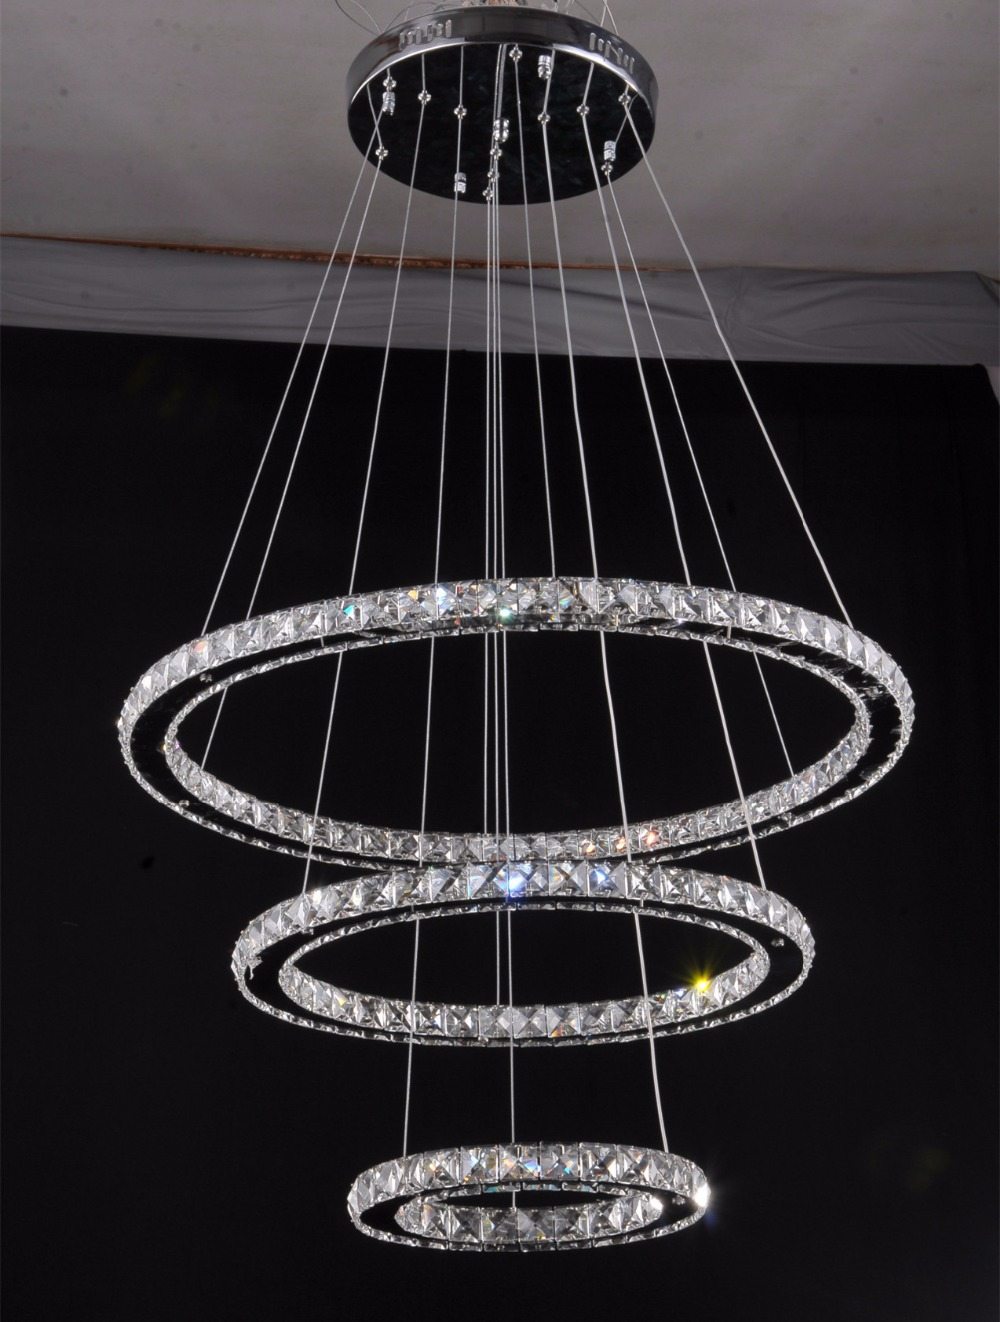 Modern Re Led Crystal 3 Ring Pendant Lights Diamond Light Fixture Suspension Lighting Circles Lamp In From